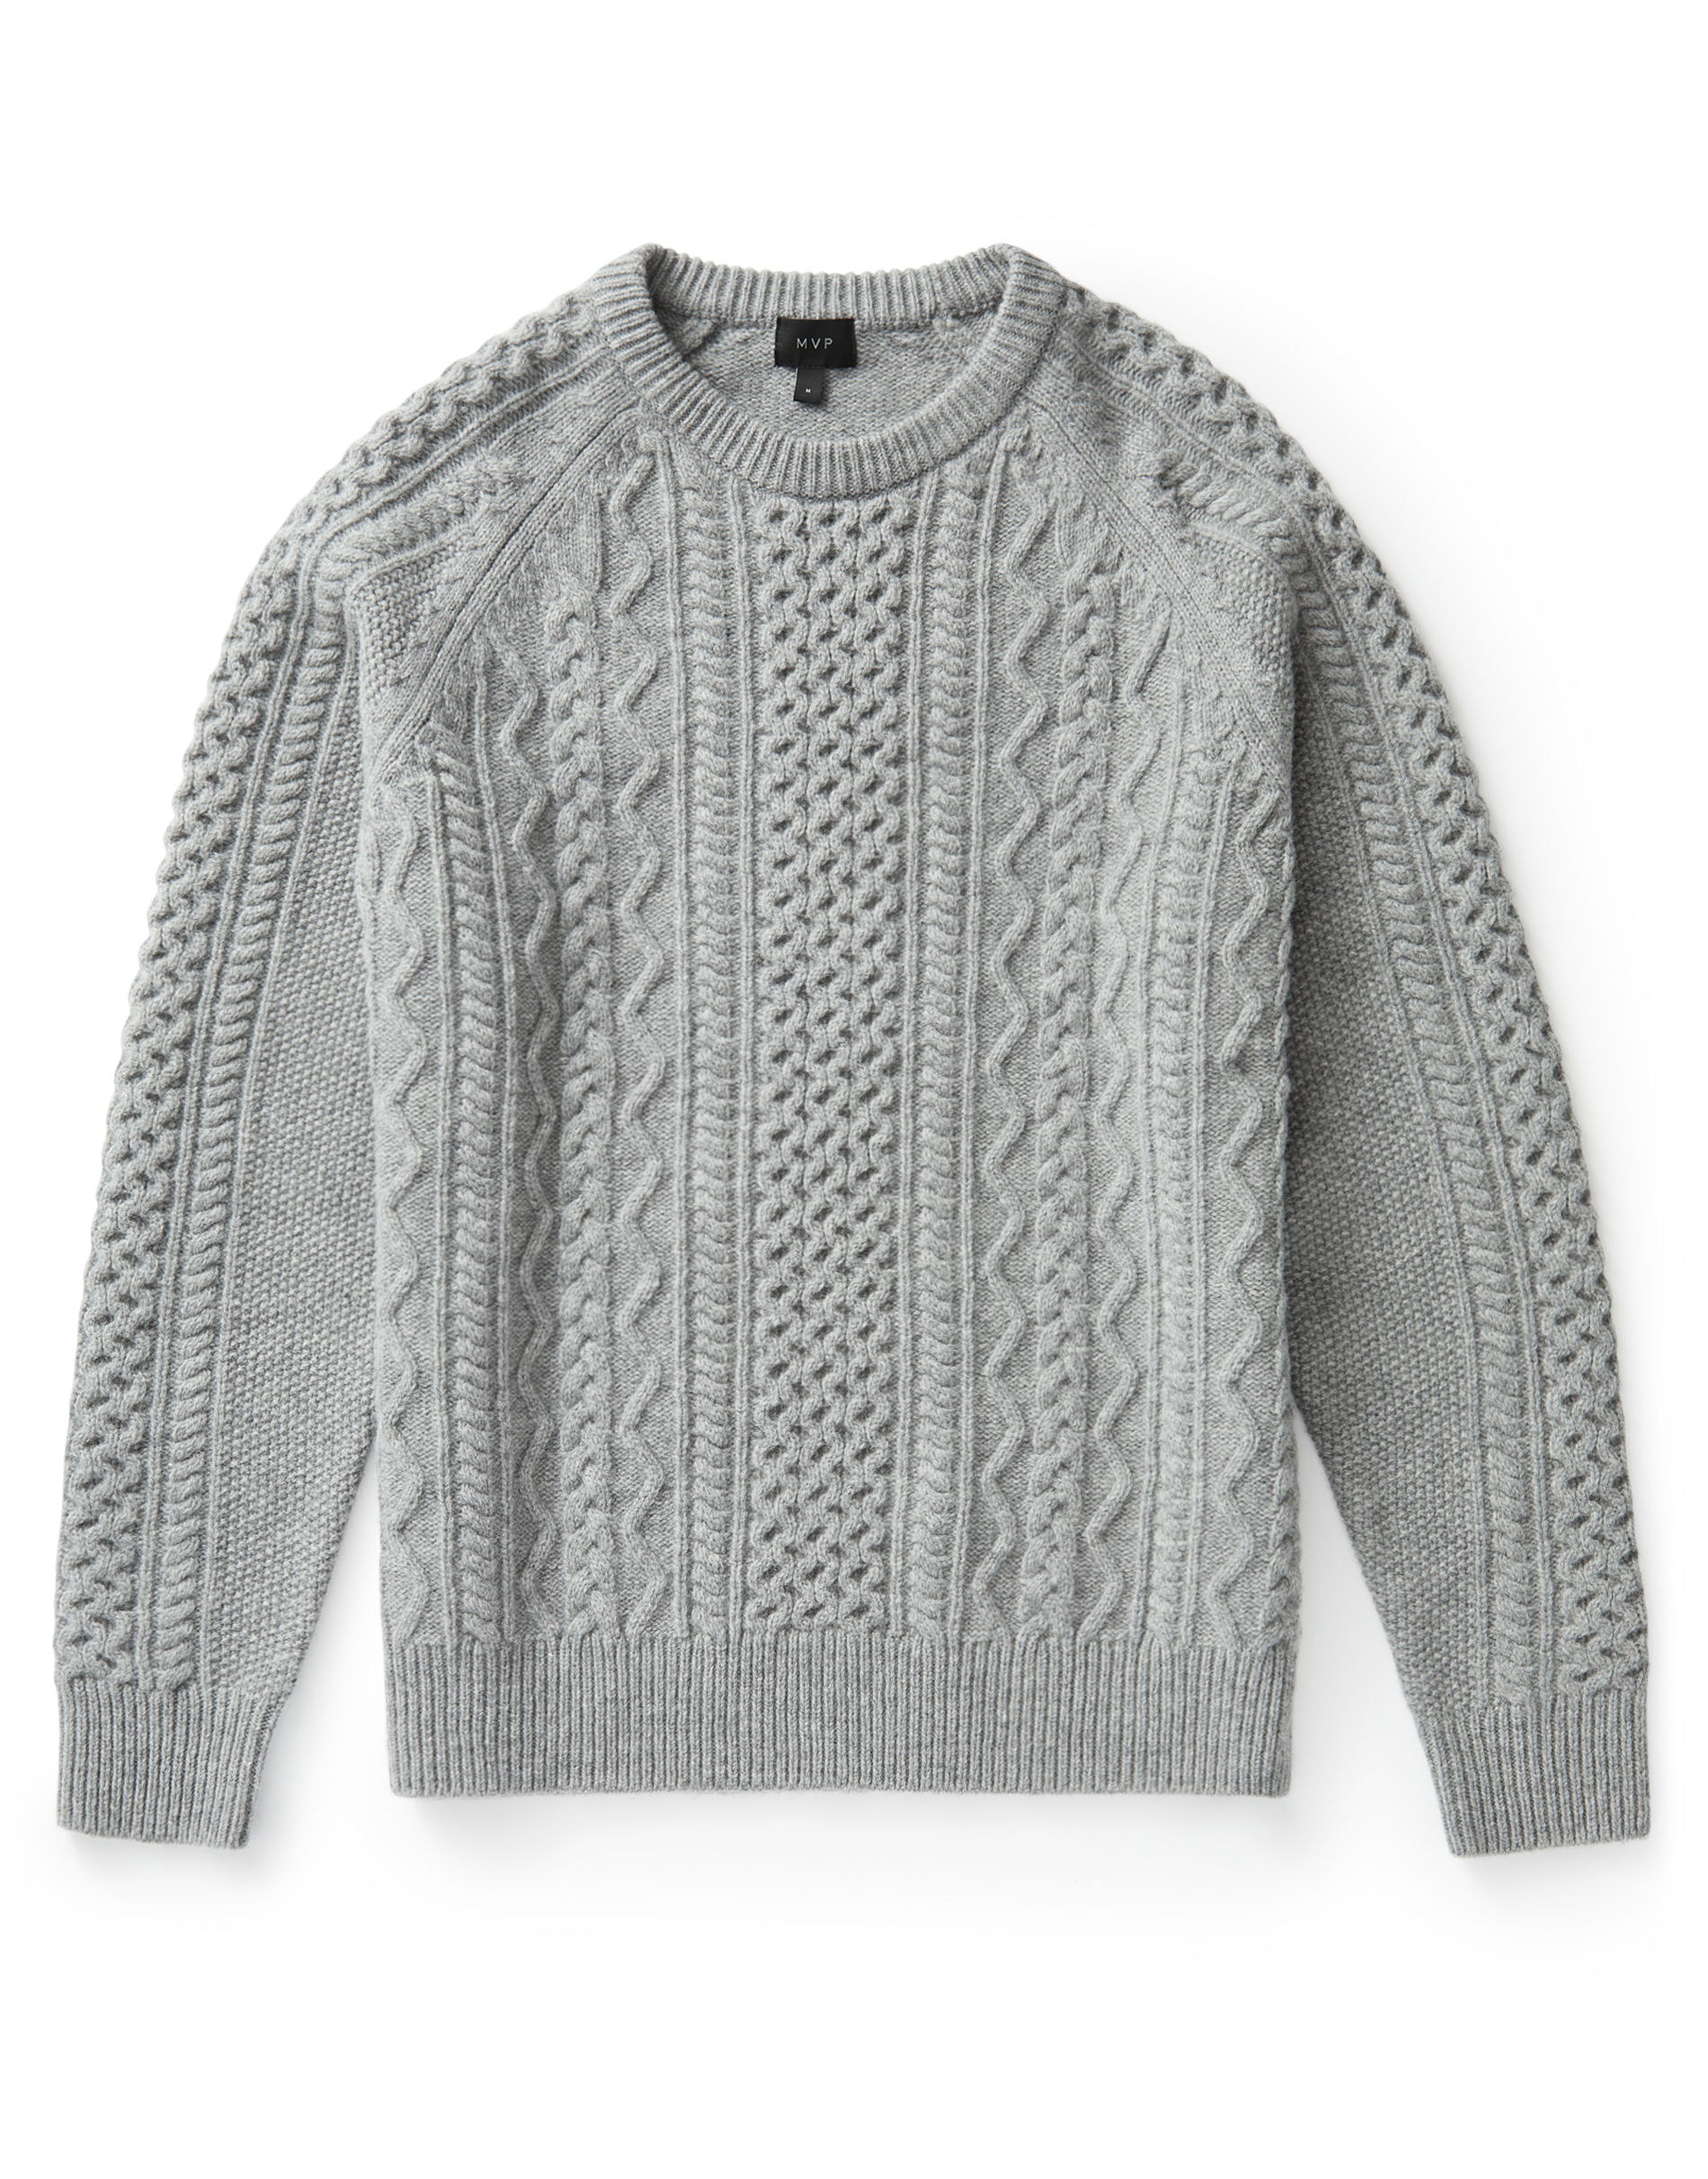 MVP Grey Finnis Lambswool Cable Knit Sweater